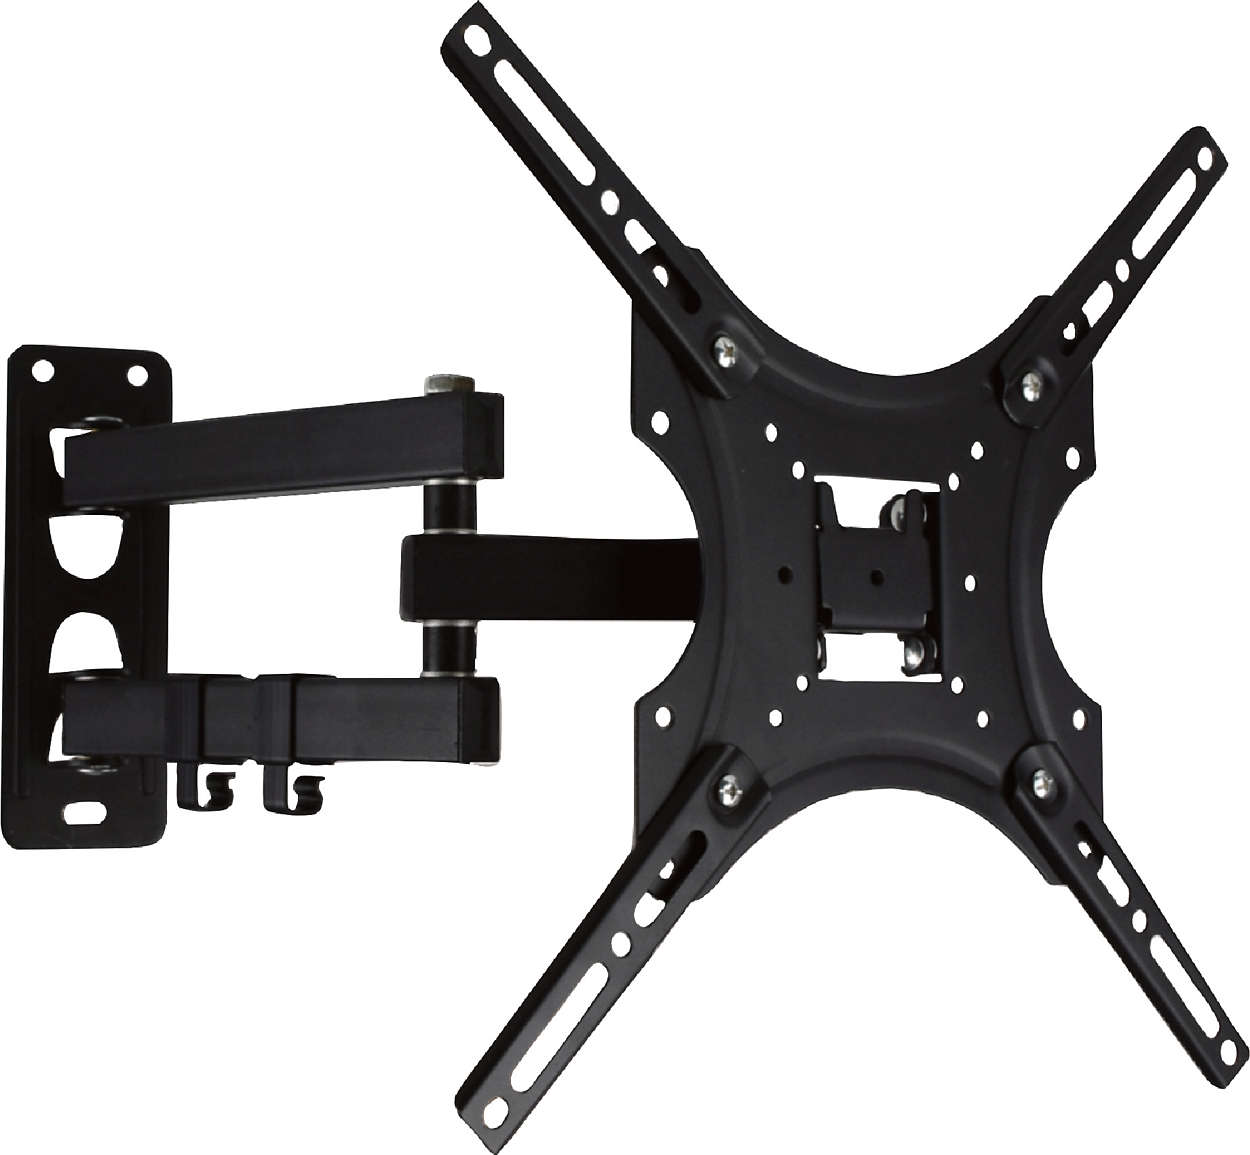 Universal articulating wall mount